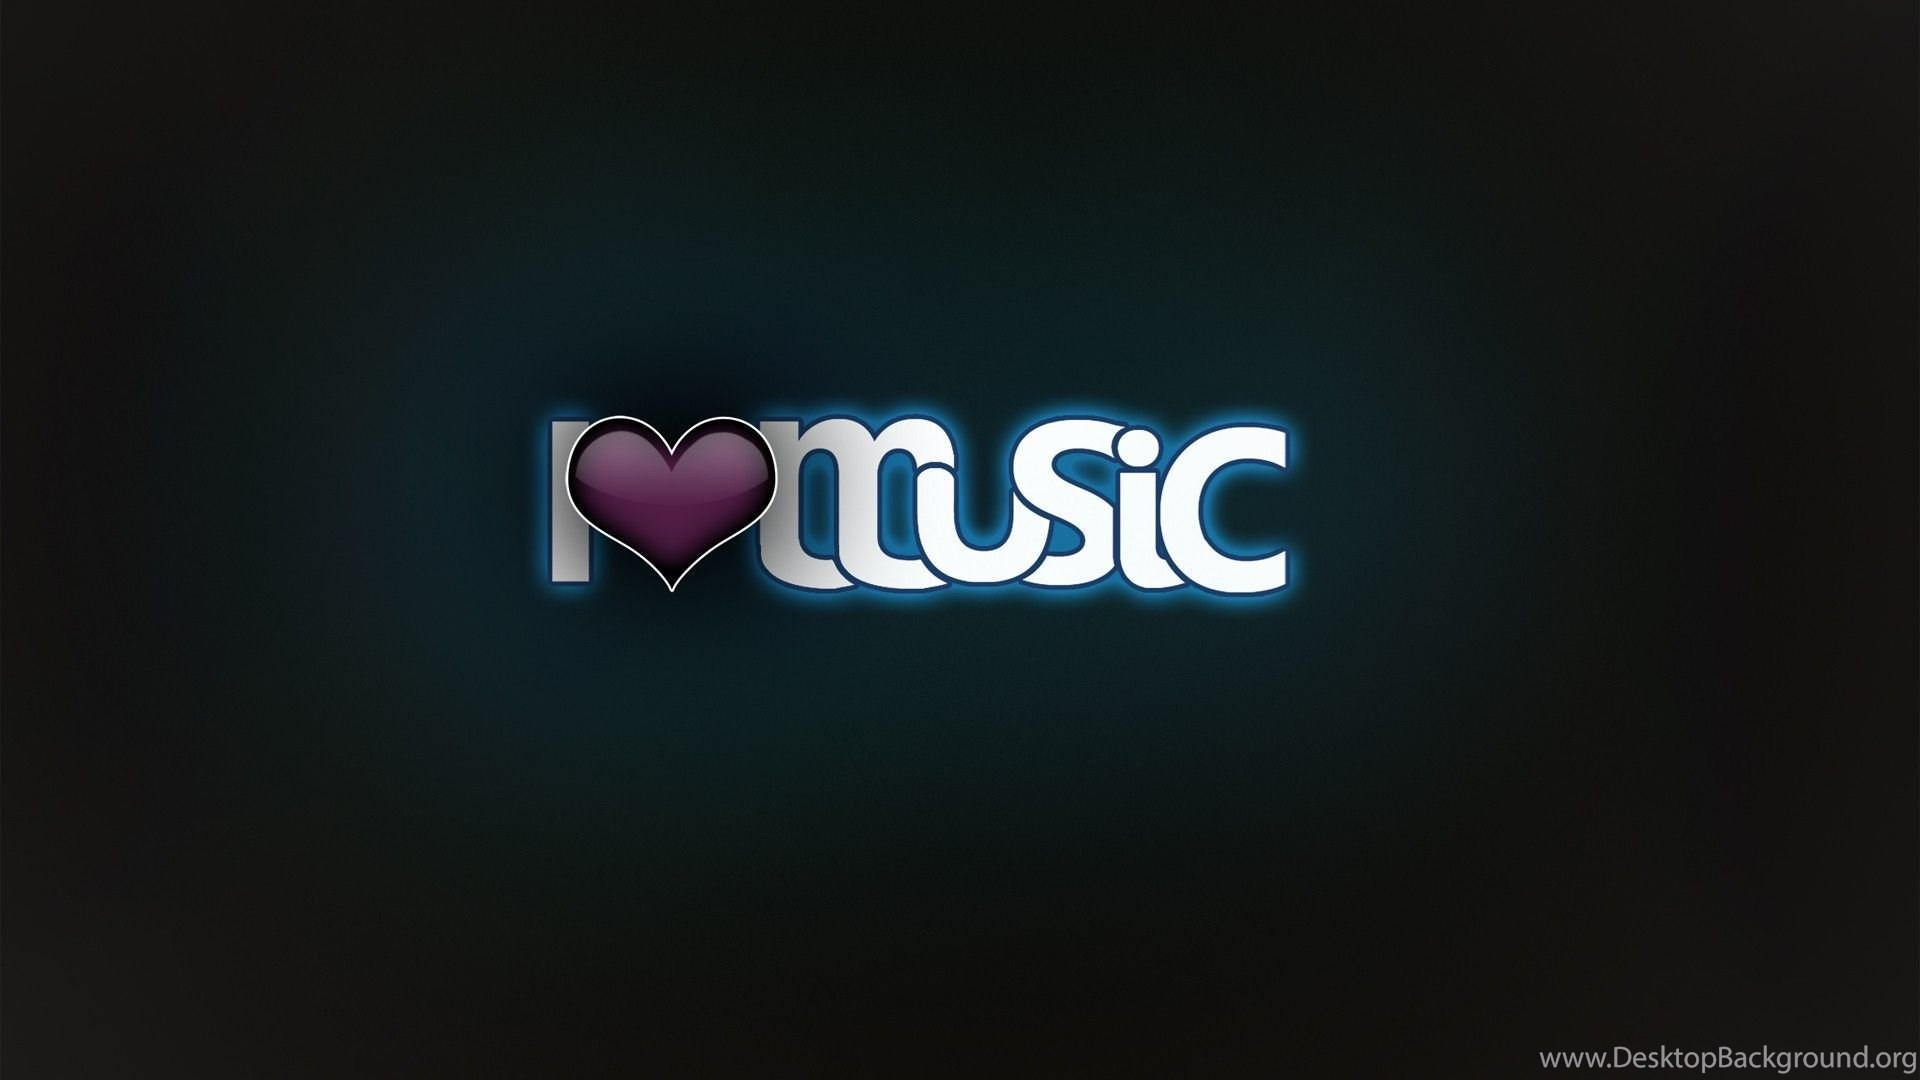 I Love Music Quotes Exclusive Hd Wallpapers Desktop Background